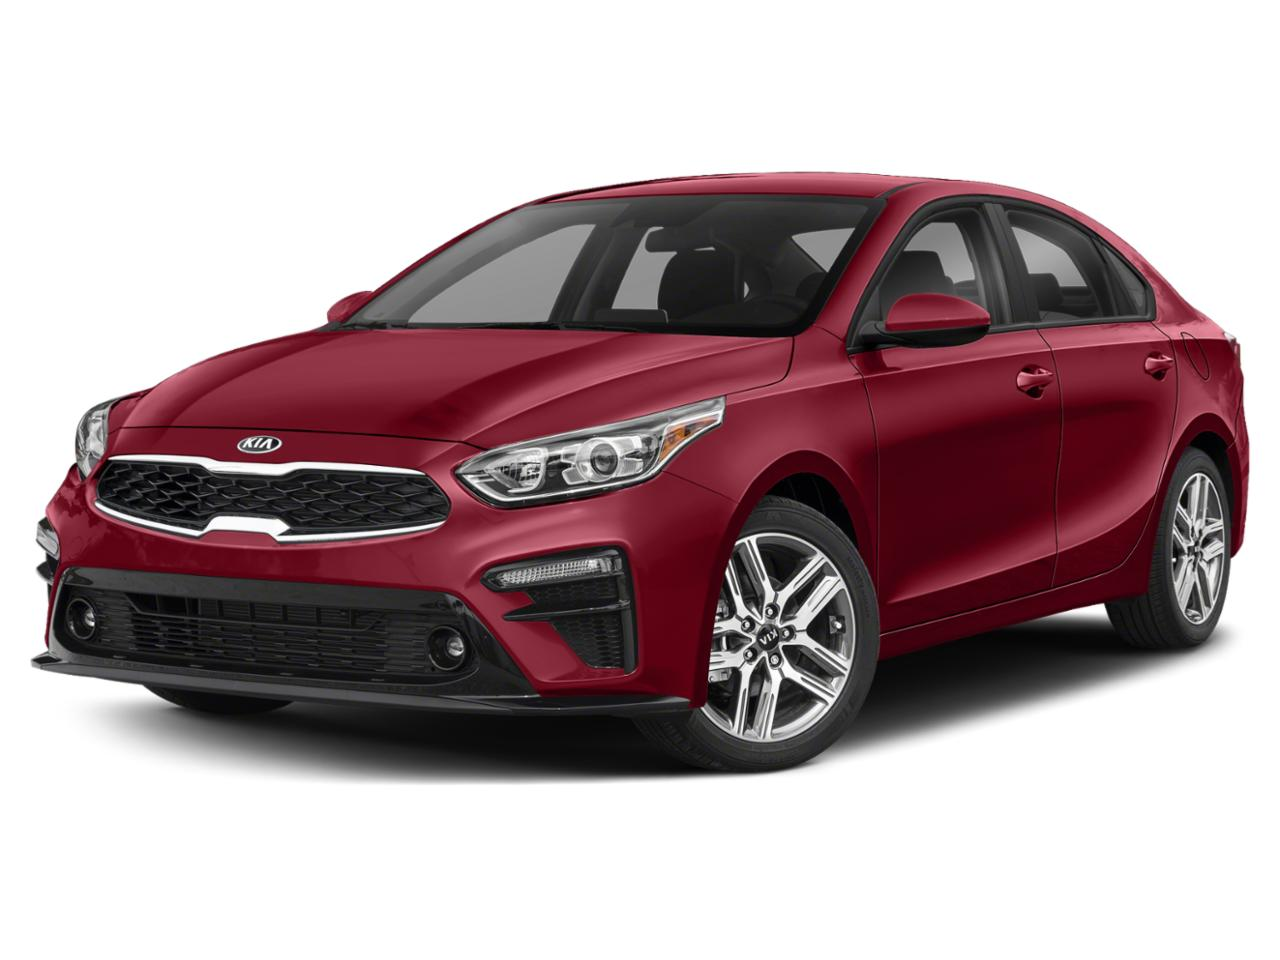 2019 Kia Forte Vehicle Photo in Wendell, NC 27591